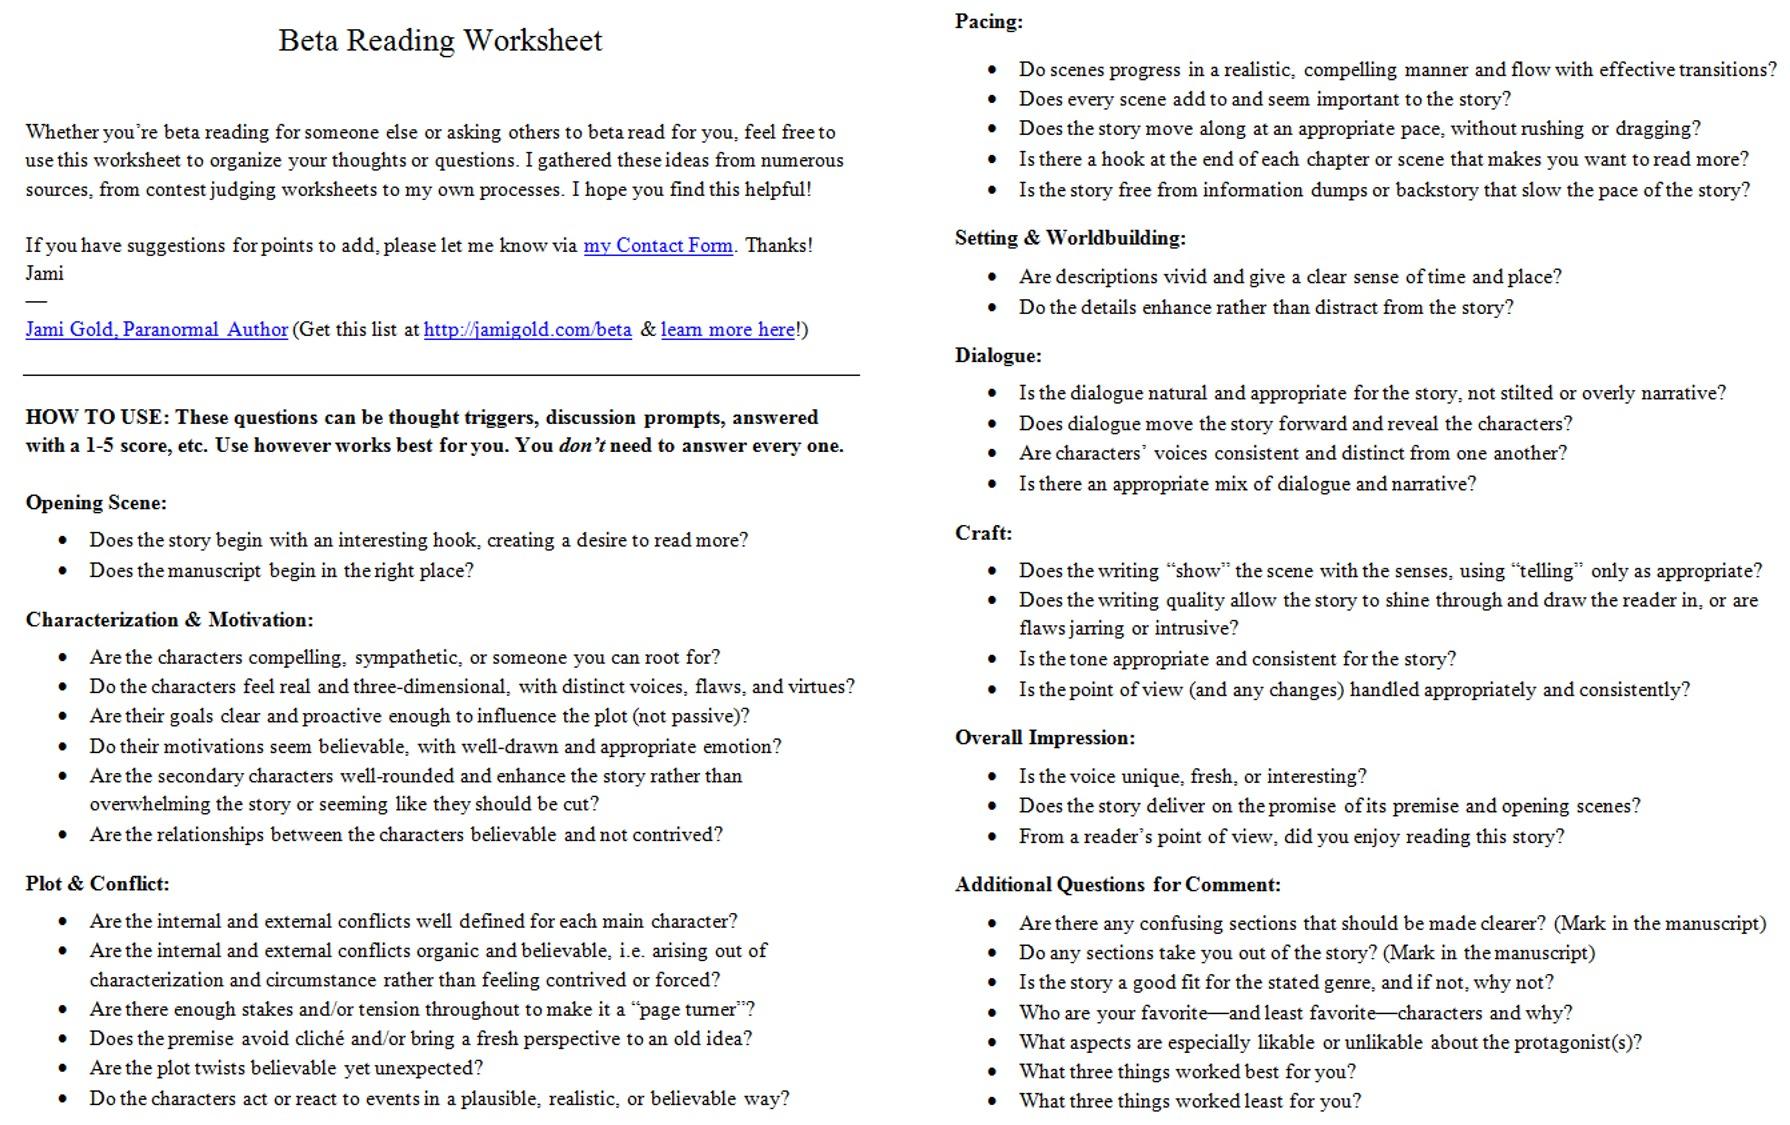 Aldiablosus  Terrific Worksheets For Writers  Jami Gold Paranormal Author With Entrancing Screen Shot Of The Twopage Beta Reading Worksheet With Delightful Spelling Worksheets For Grade  Also Writing Linear Equations Worksheet Answers In Addition Oxidation Reduction Reactions Worksheet And Renaissance Worksheets As Well As Isotopes Worksheet Answer Key Additionally Mixed Fraction Worksheets From Jamigoldcom With Aldiablosus  Entrancing Worksheets For Writers  Jami Gold Paranormal Author With Delightful Screen Shot Of The Twopage Beta Reading Worksheet And Terrific Spelling Worksheets For Grade  Also Writing Linear Equations Worksheet Answers In Addition Oxidation Reduction Reactions Worksheet From Jamigoldcom